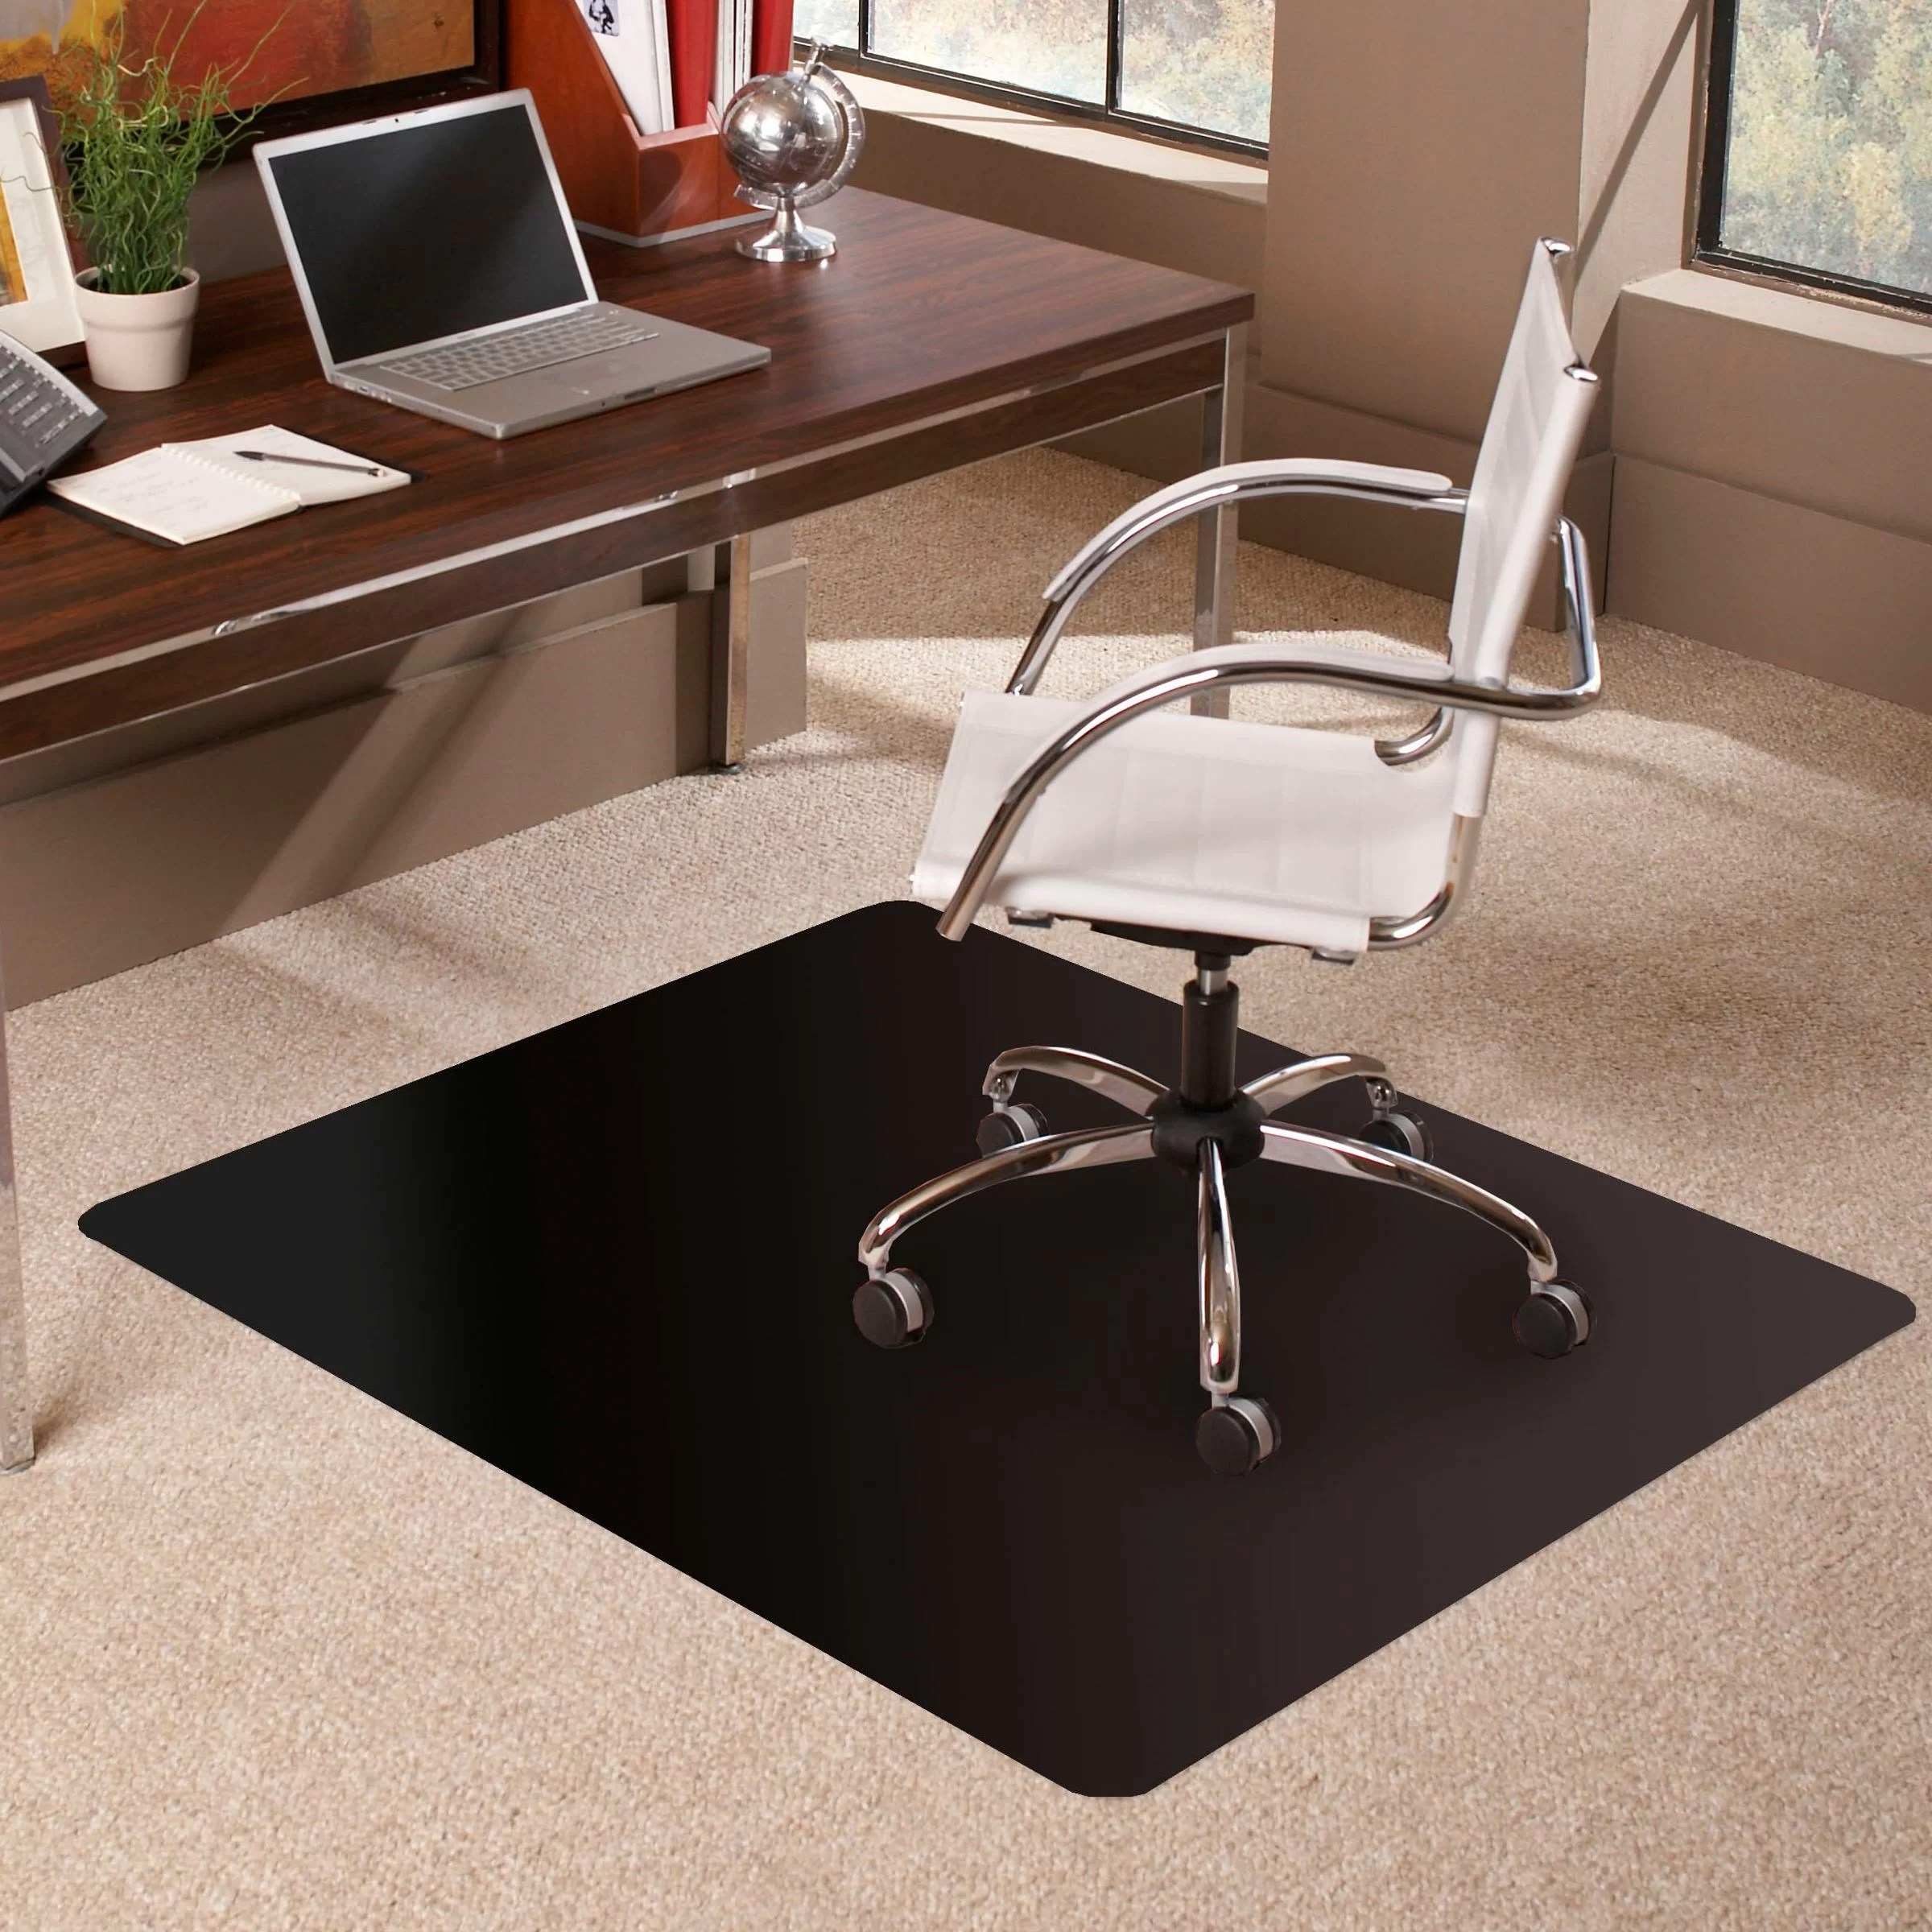 desk chair mats adult high es robbins trendsetter rectangle low pile carpet straight